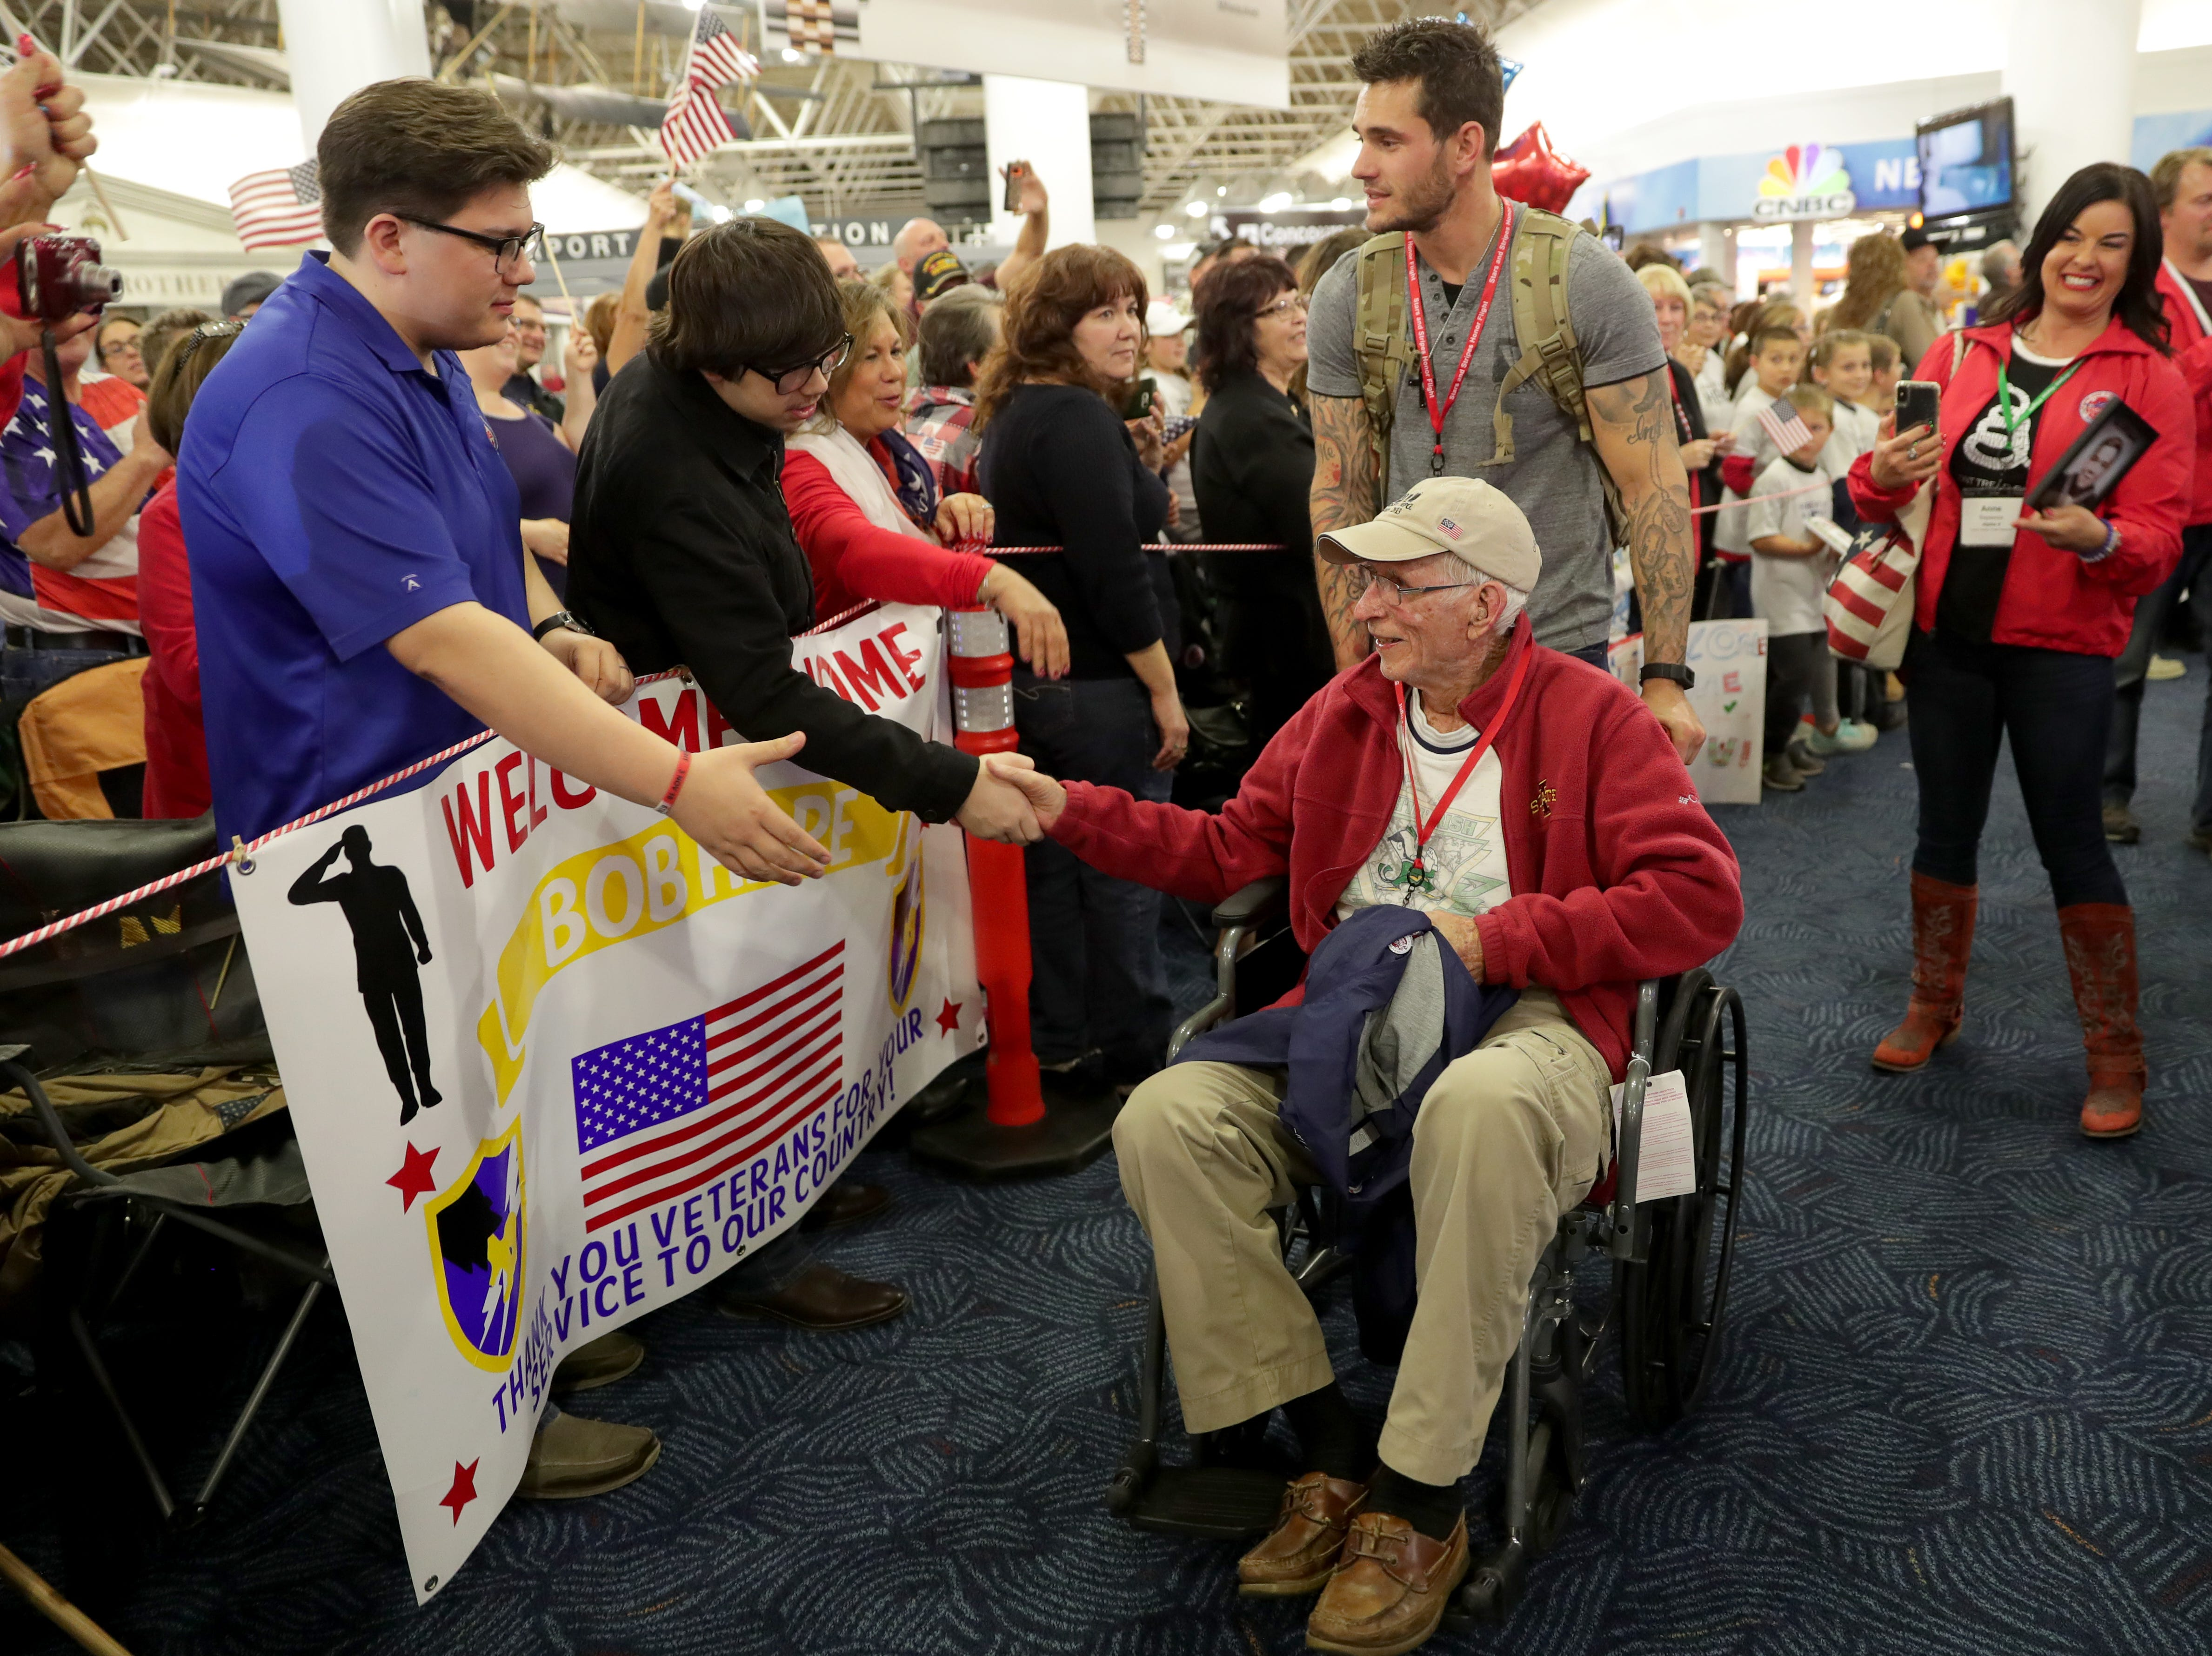 World War II Army veteran Ray Emery, 96, is greeted with his guardian, Emery's grandson, Andrew Rehberg, who served two deployments in Afghanistan, 2010-'11 and 2012-'13, and in Kuwait, 2016-'17, after getting off the plane during the Stars and Stripes Honor Flight welcome home ceremony at Mitchell International Airport in Milwaukee on Saturday.